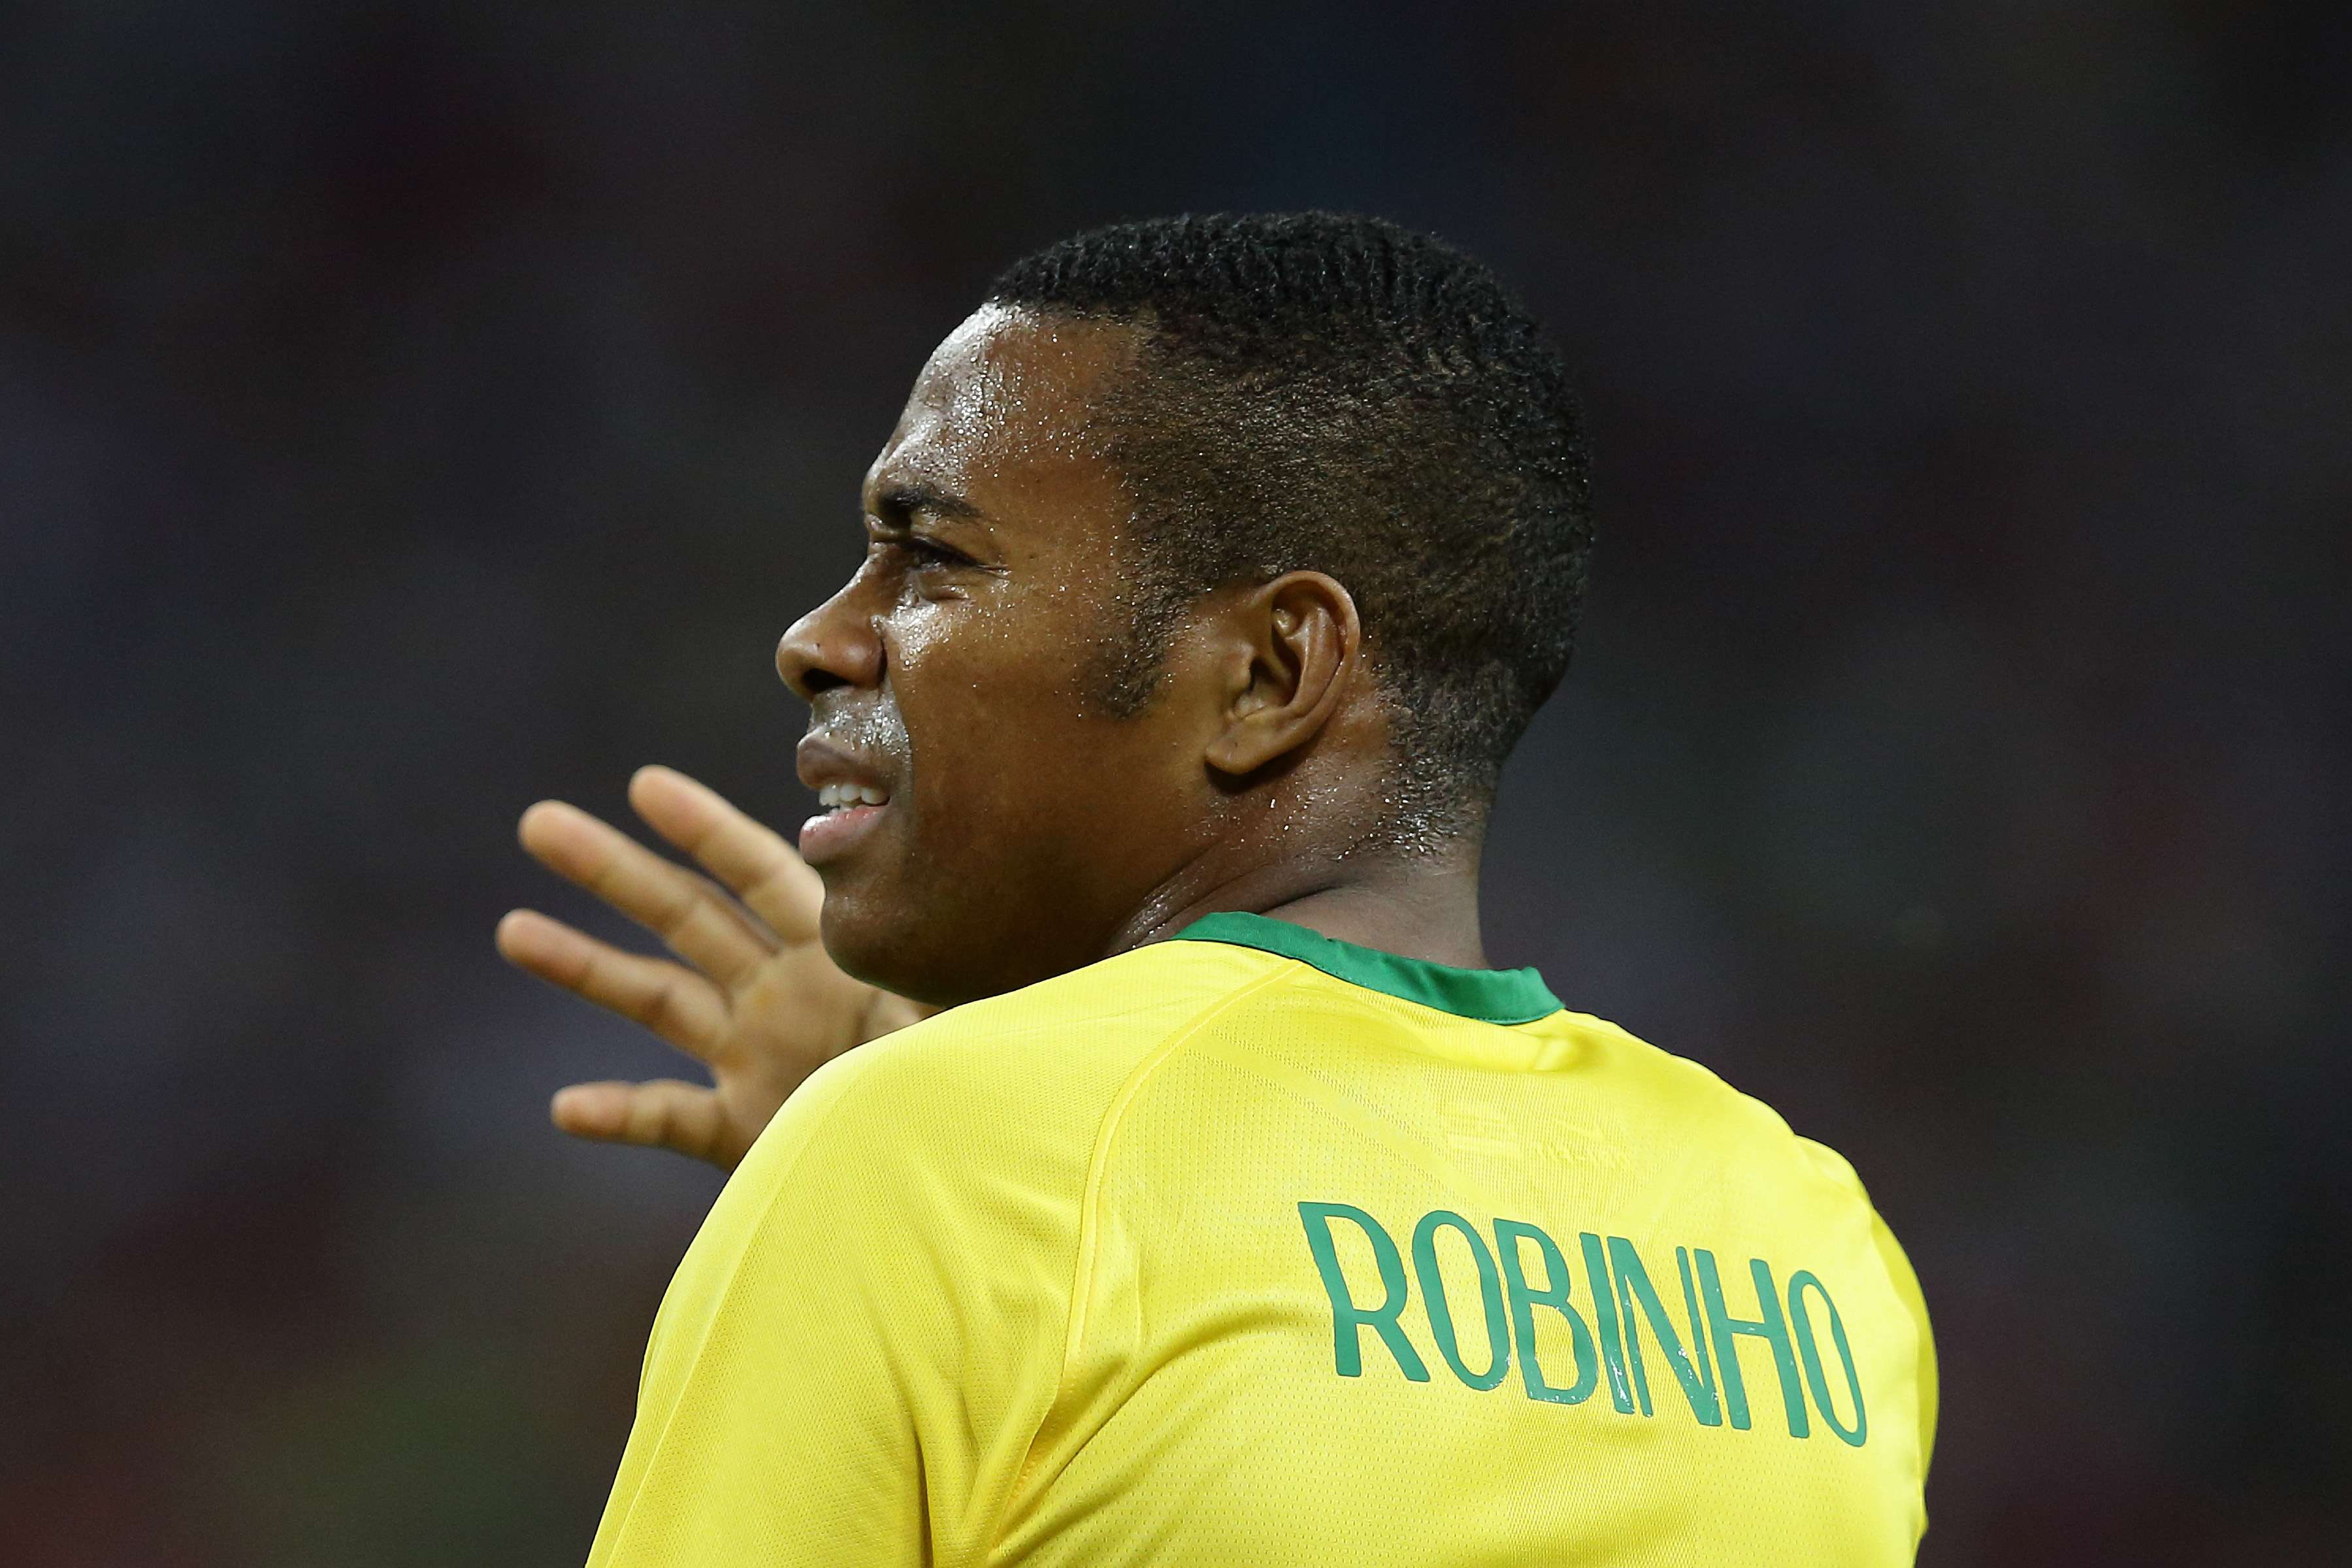 Robinho. Foto: Getty Images